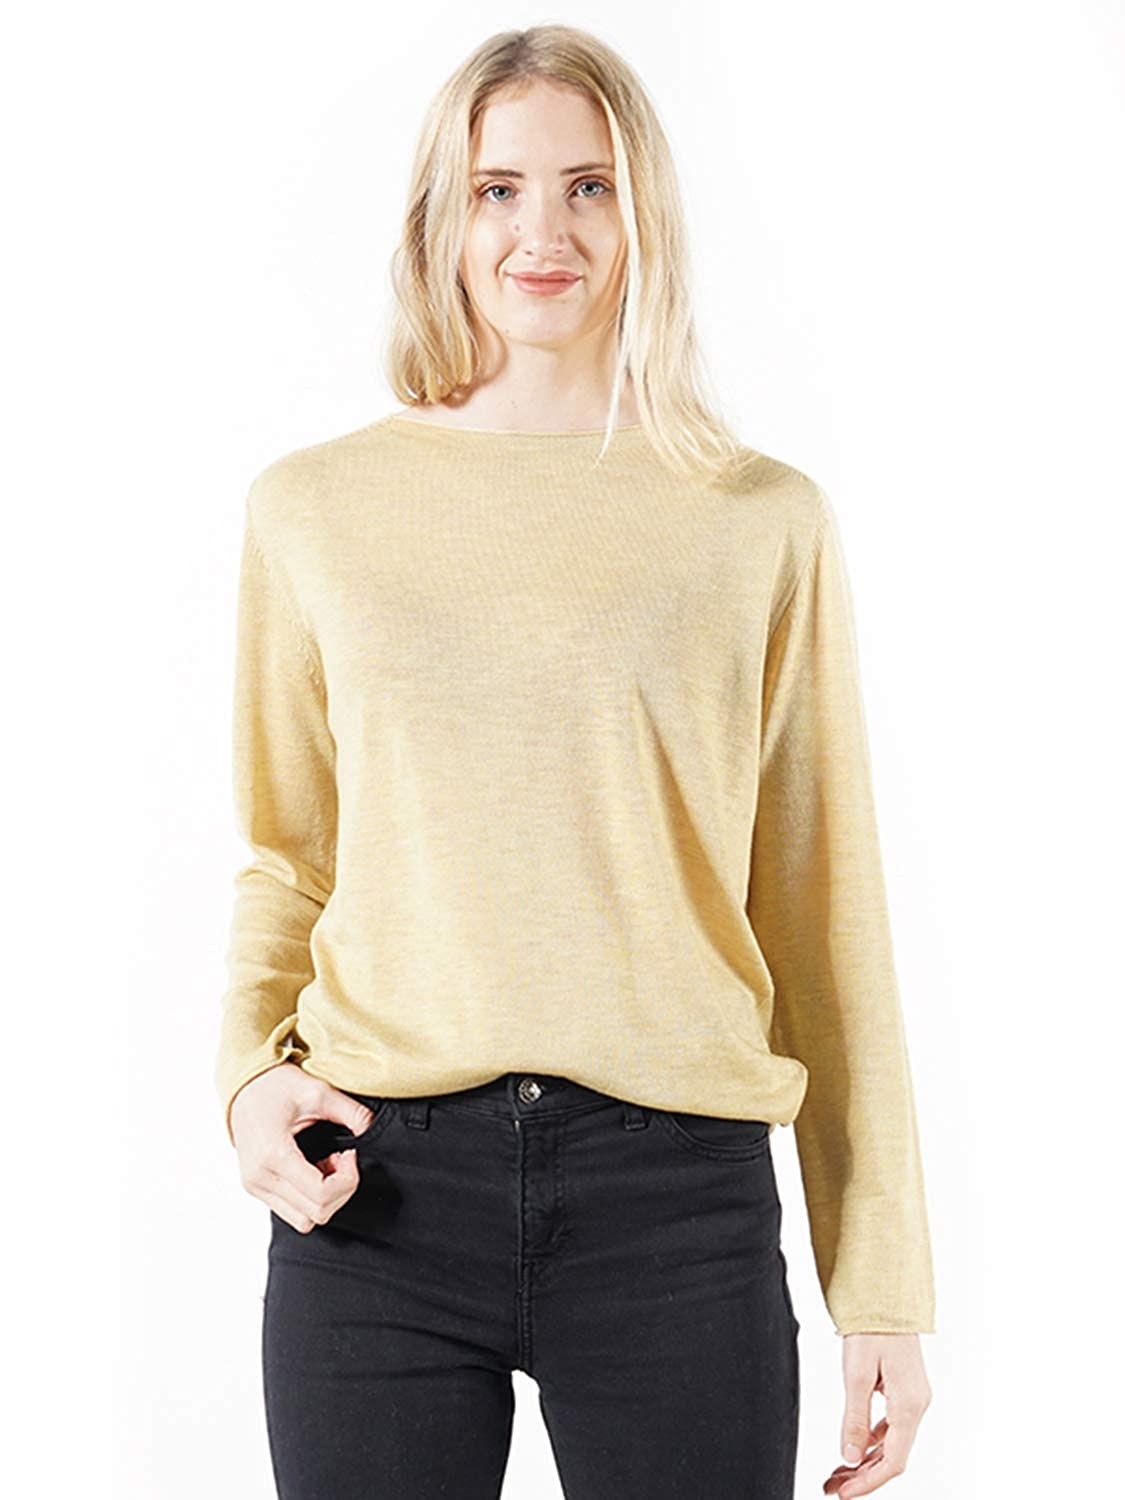 Yellow DEEBAI Women's Crew Neck Long Sleeve Sweatshirts Casual Loose Solid color Knitted Top Blouse